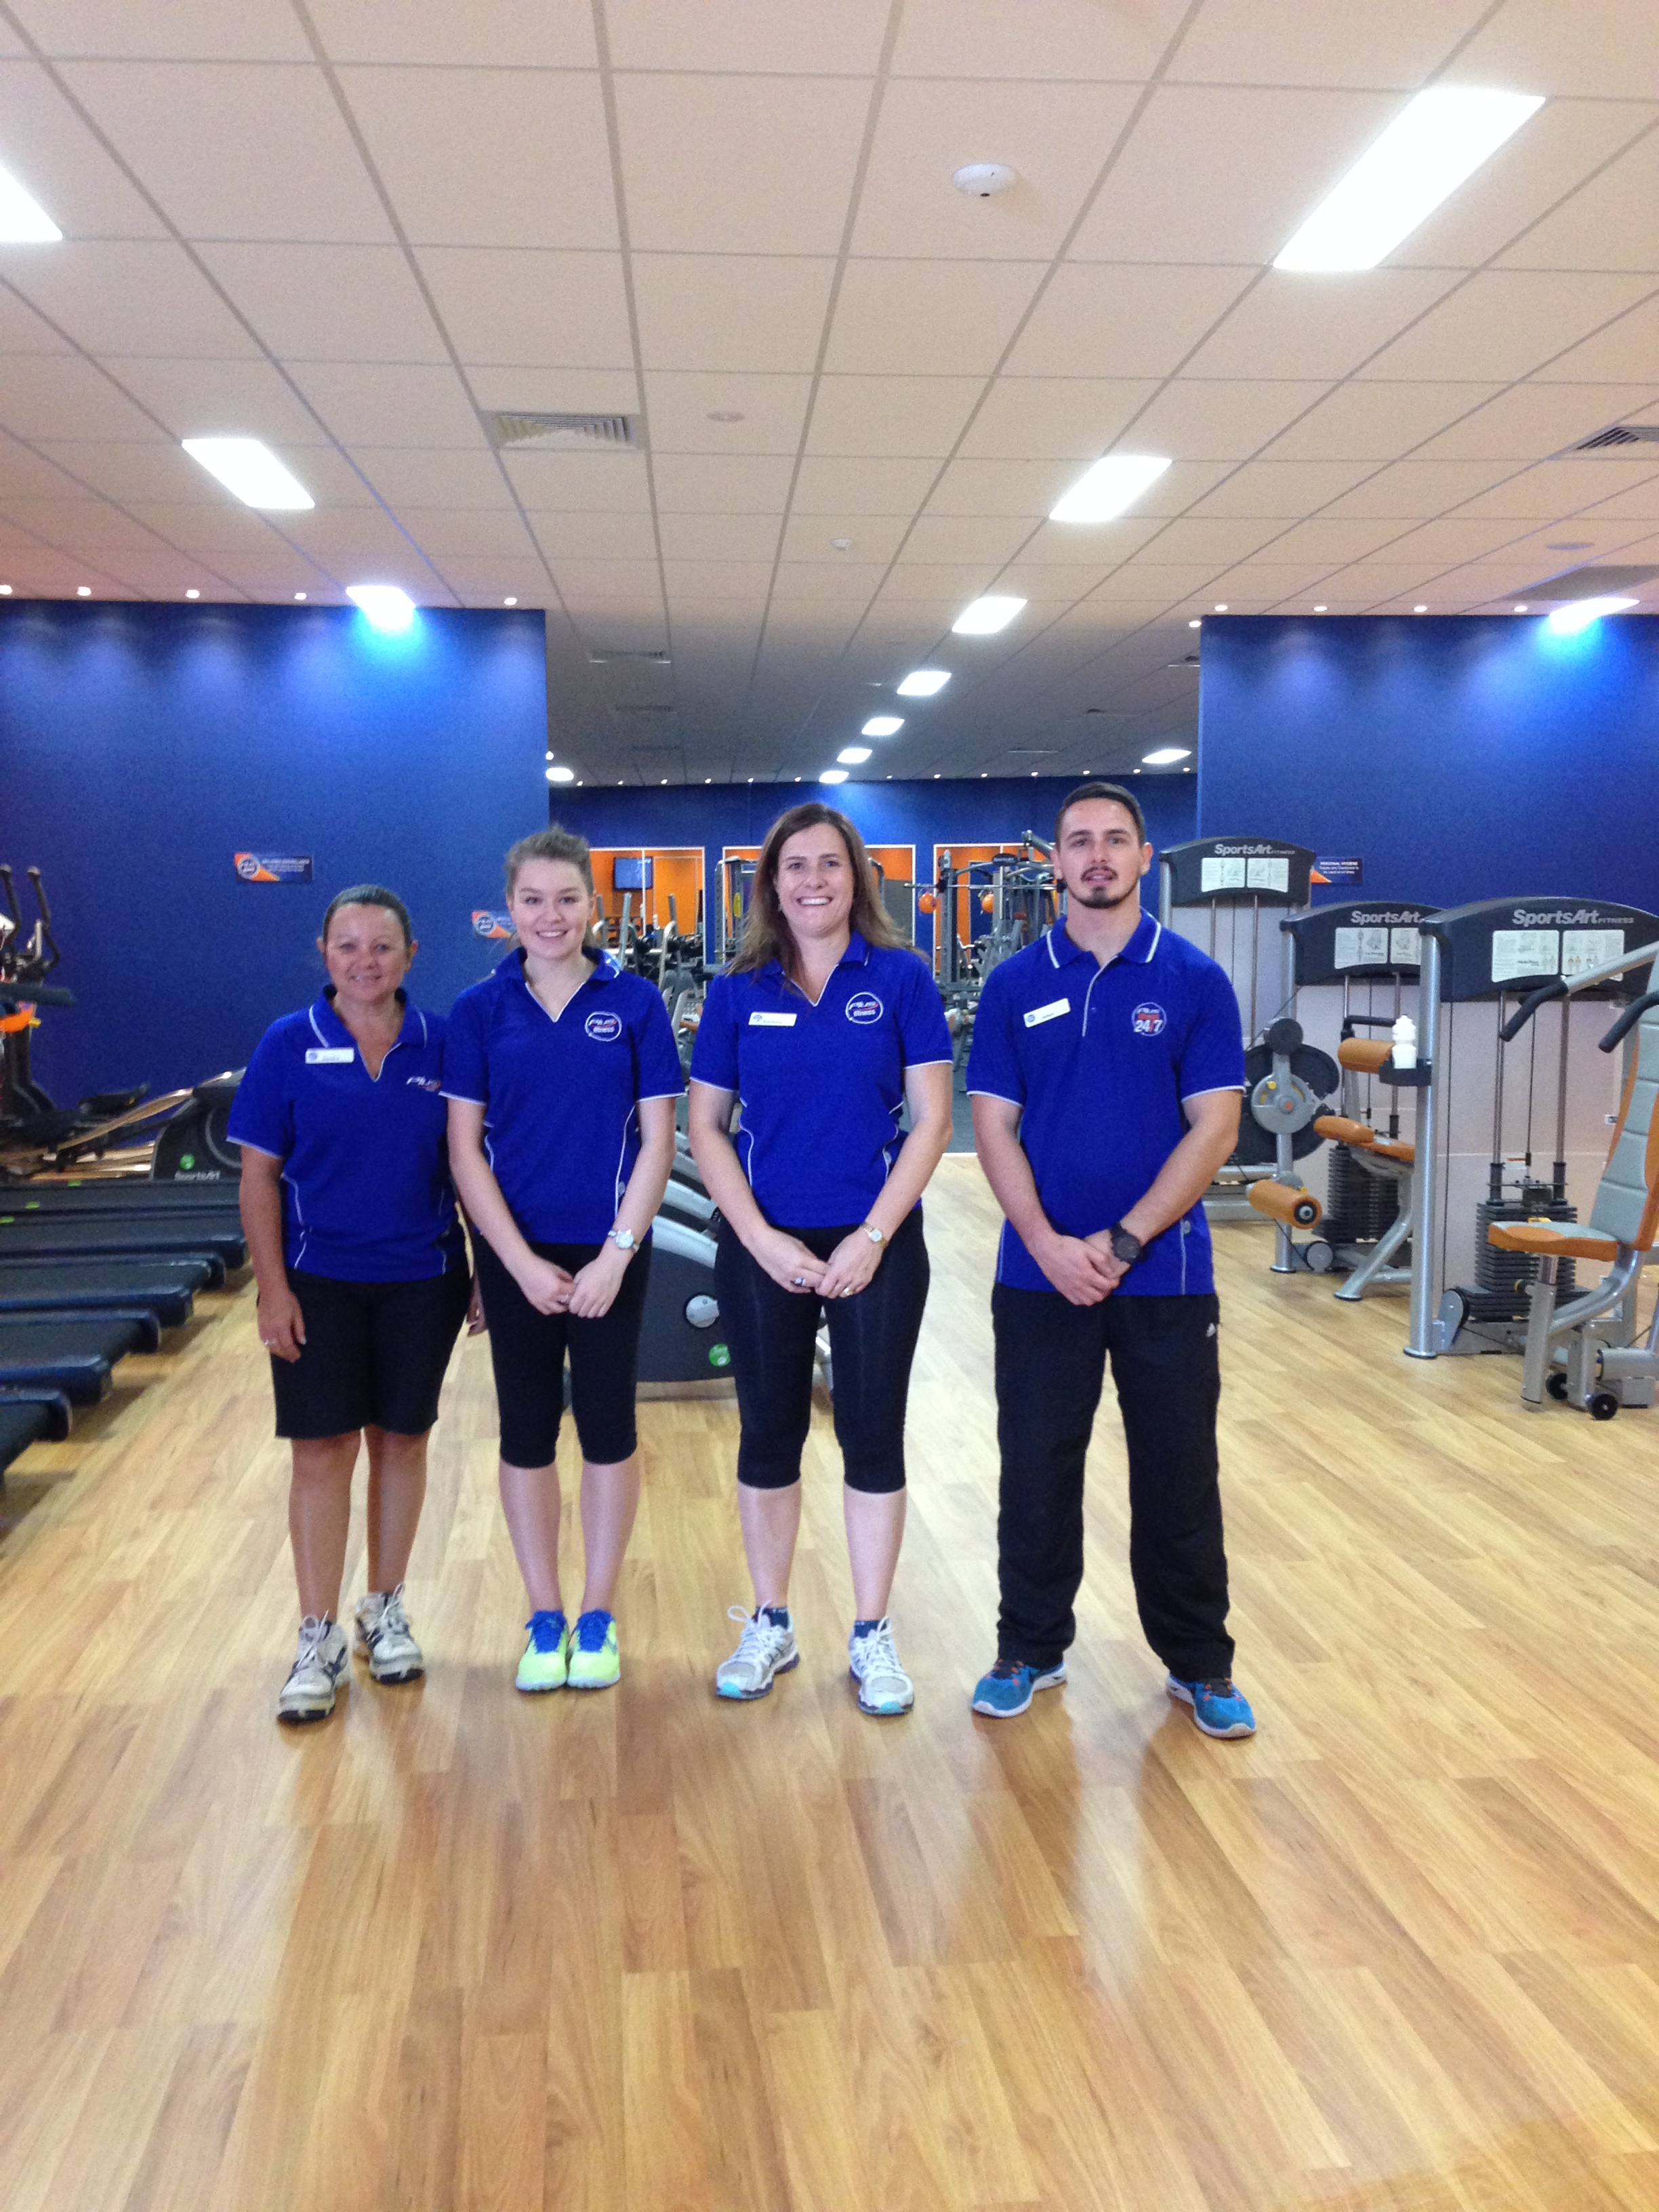 fitness 24 locations opened new Plus Fitness